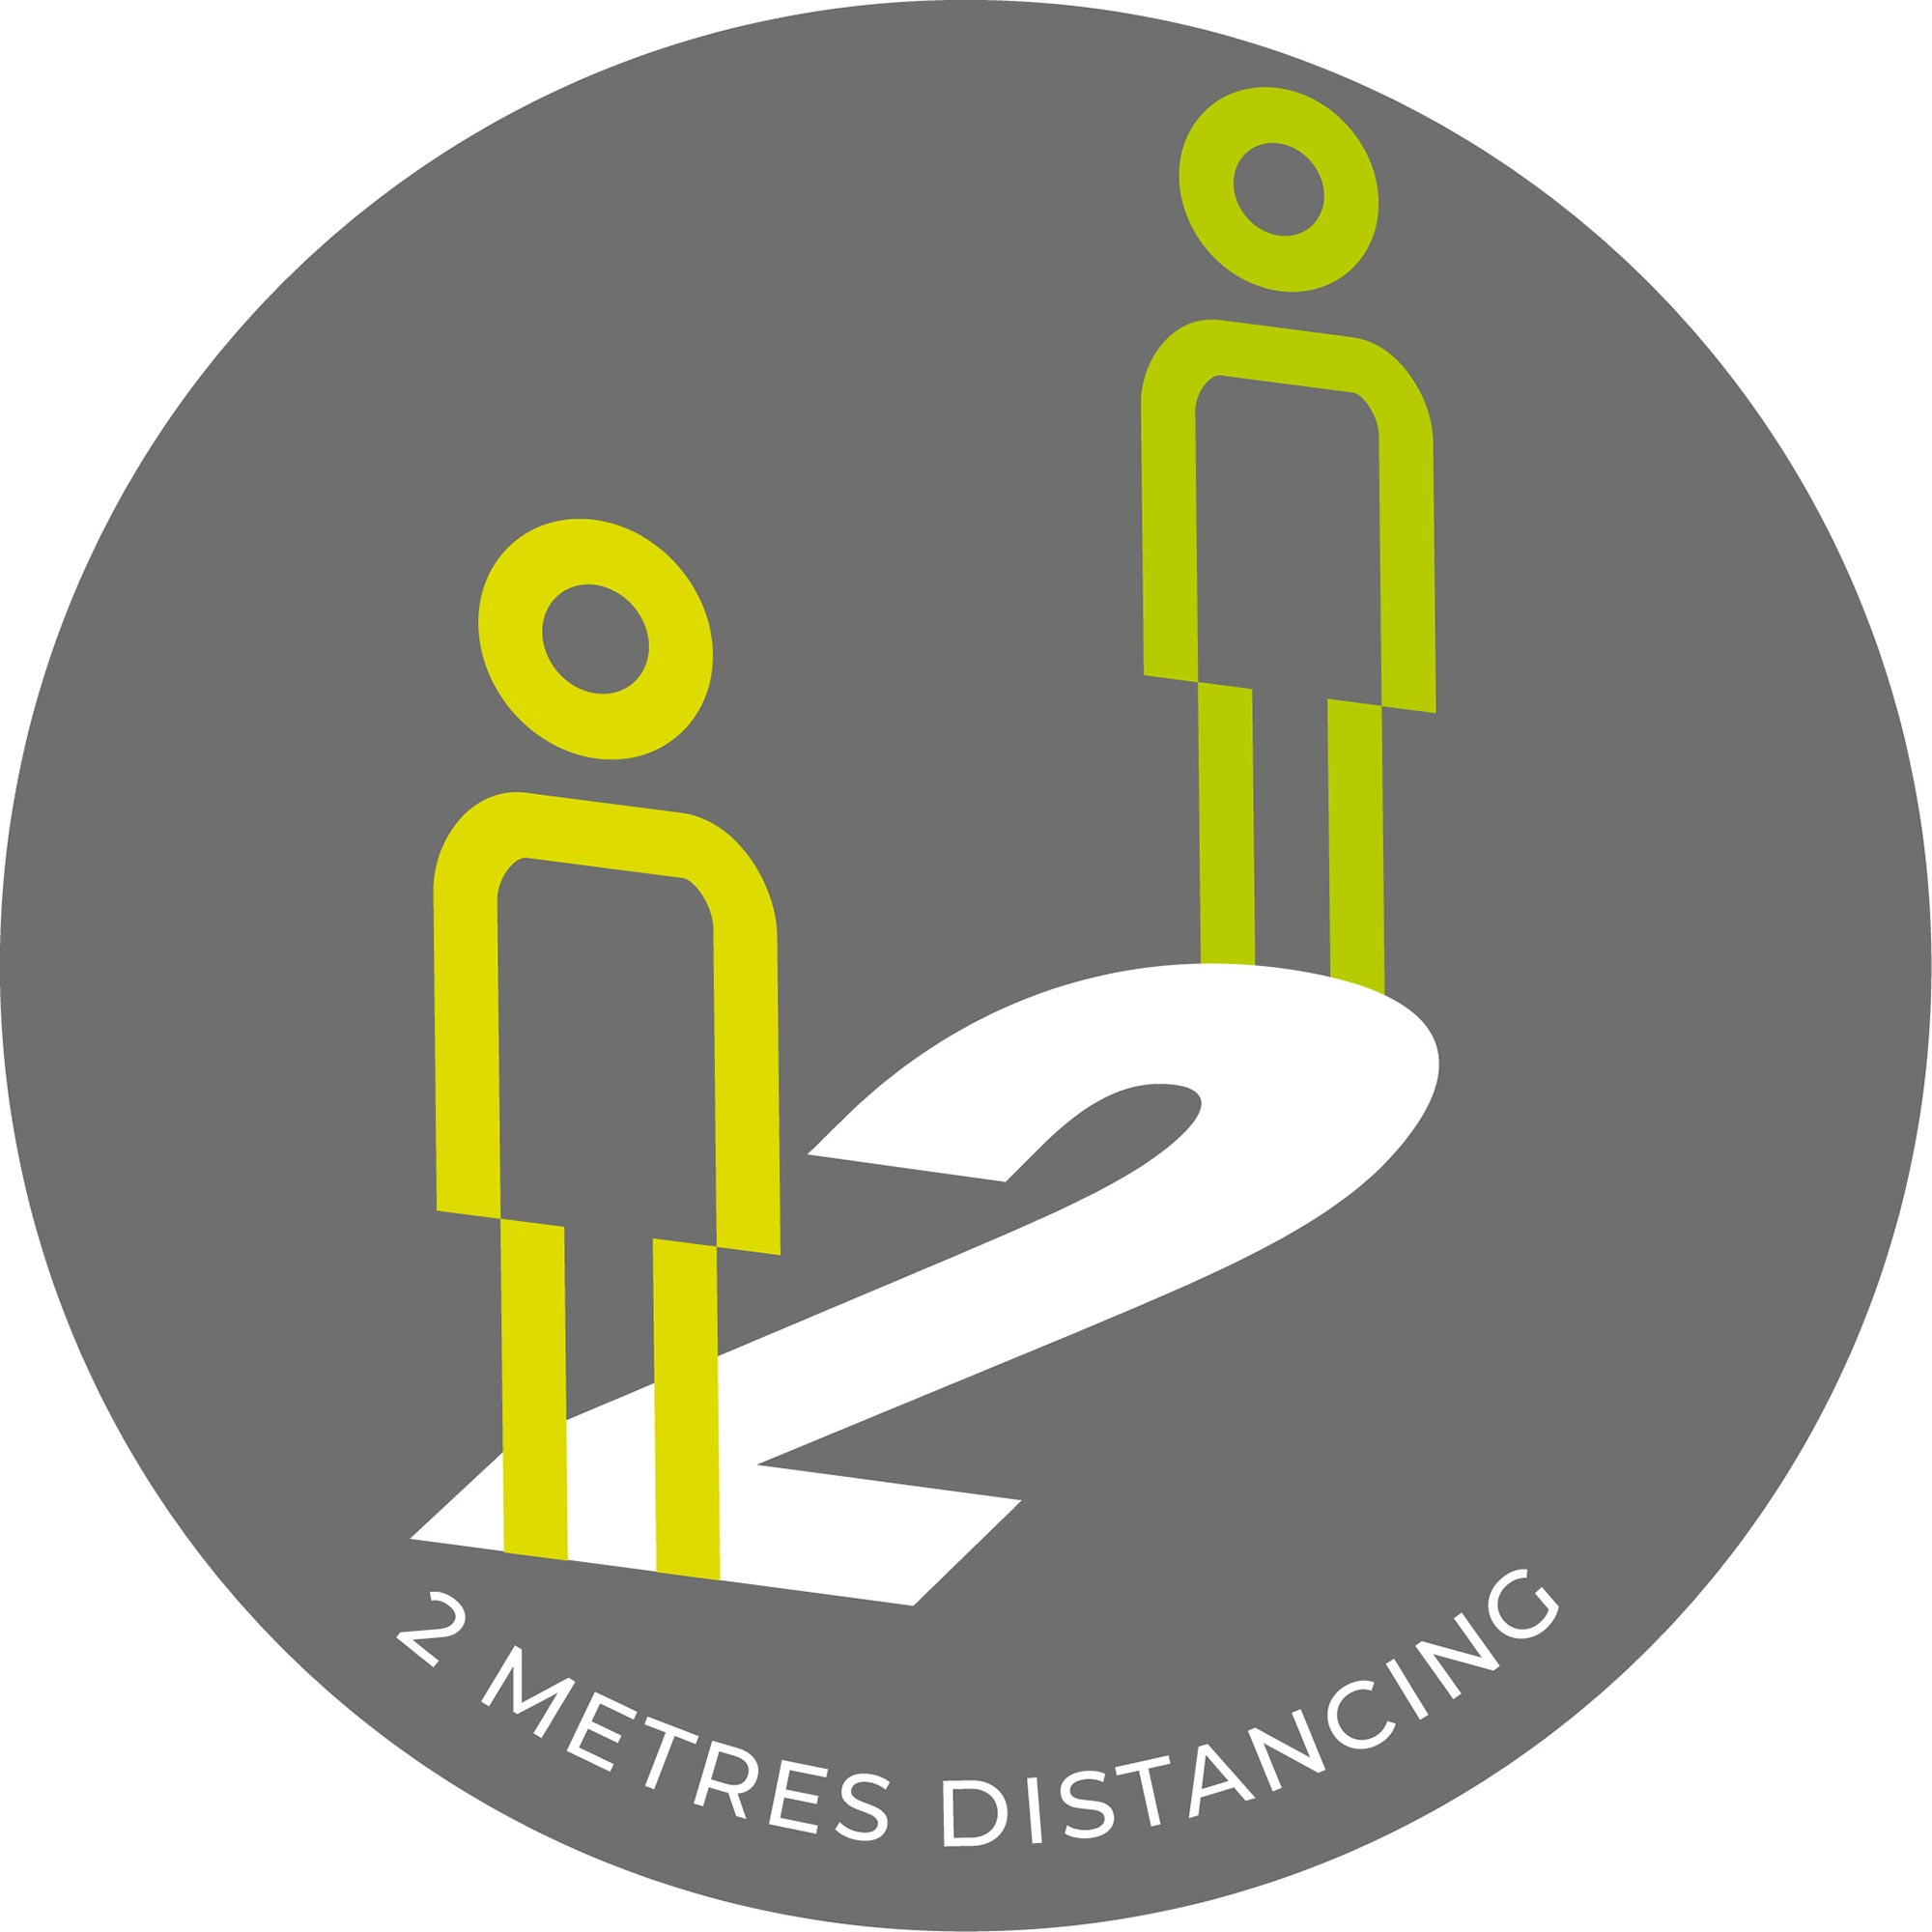 2 Metre Distancing  - Grey Sticker